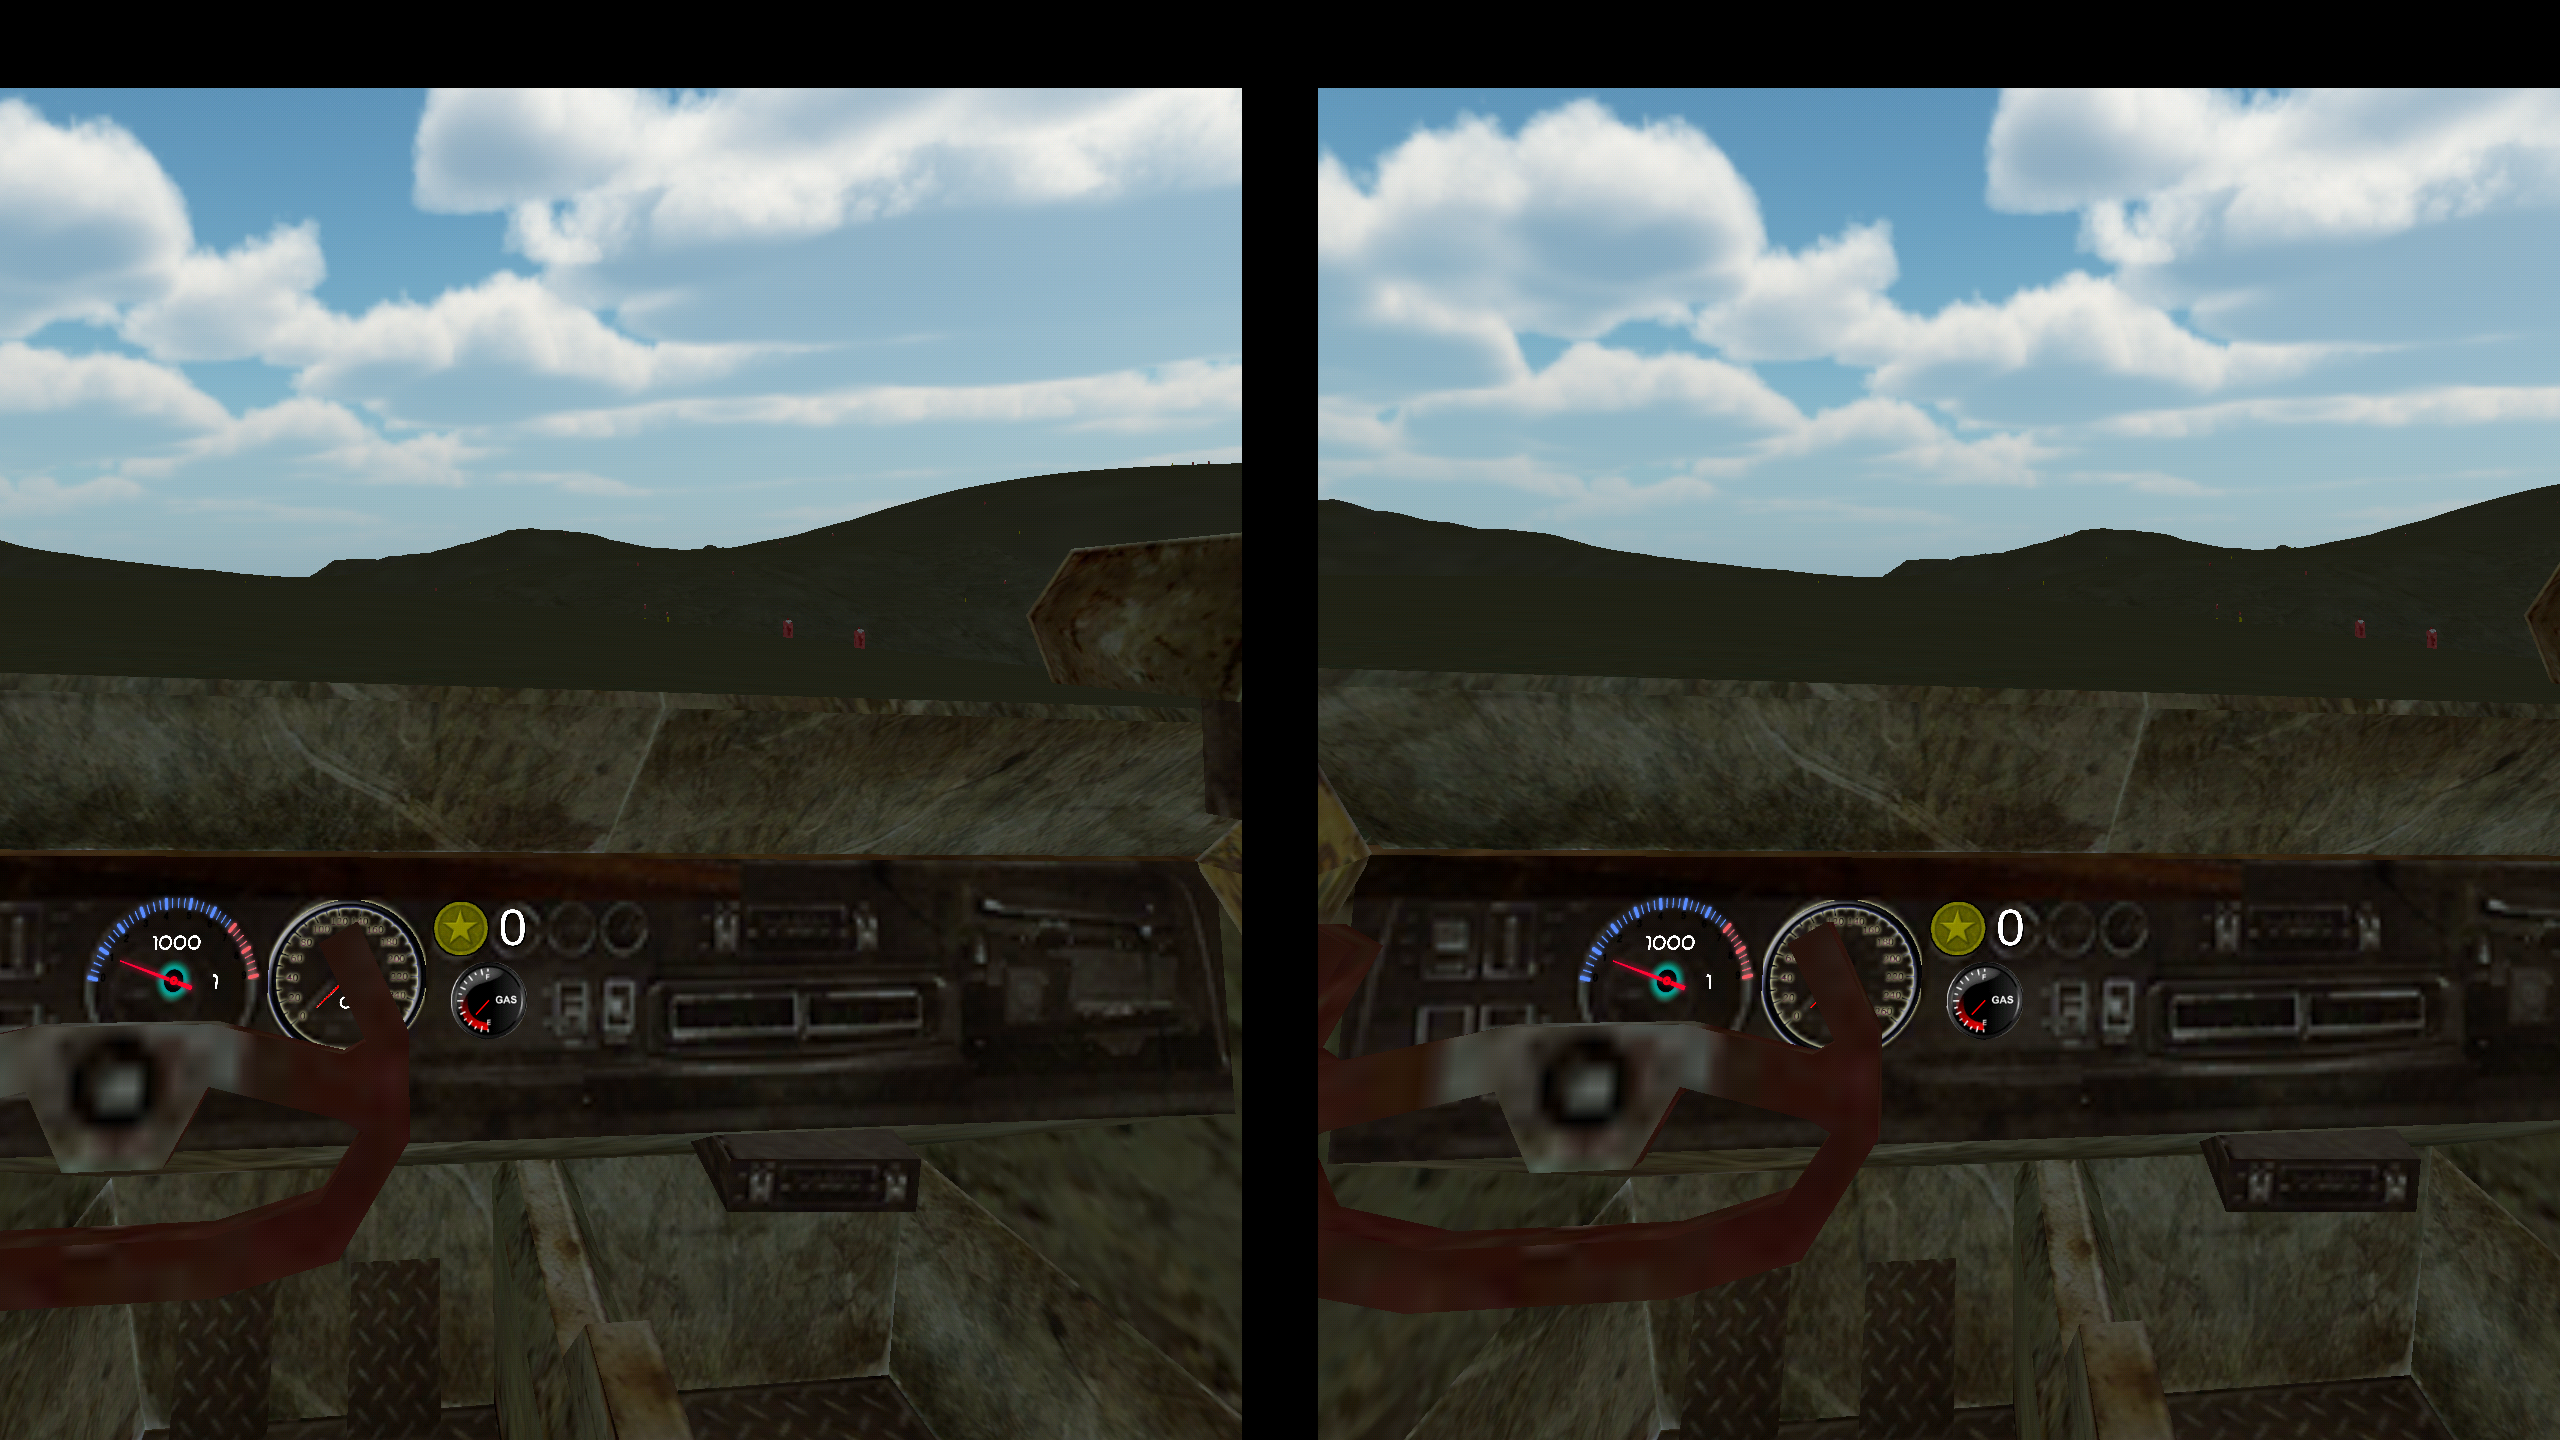 screenshot 2 HILL DRIVER VR content image